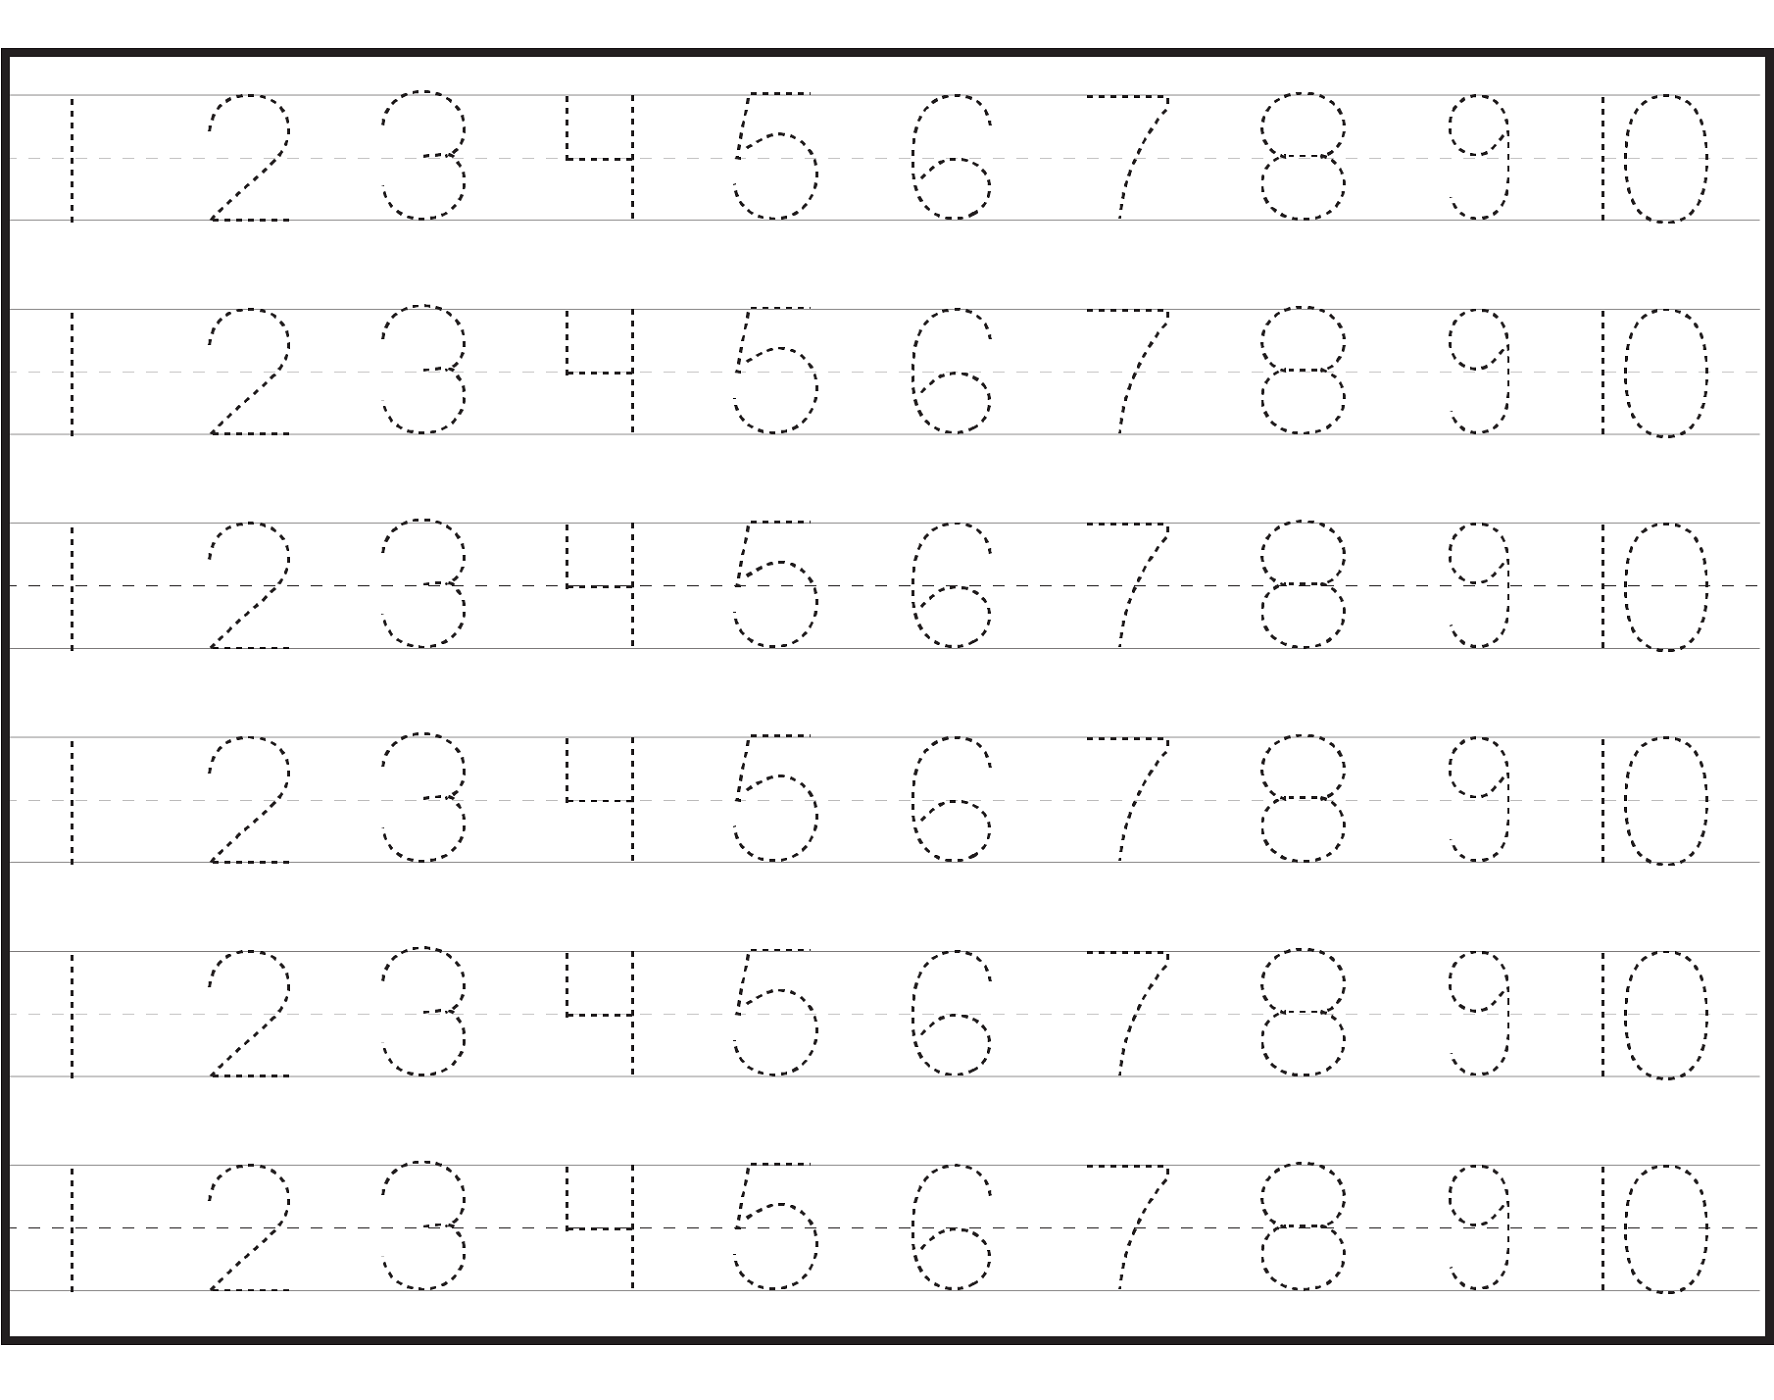 Worksheets Number Worksheets For Pre-k pre k worksheets number activity shelter numbers numbers